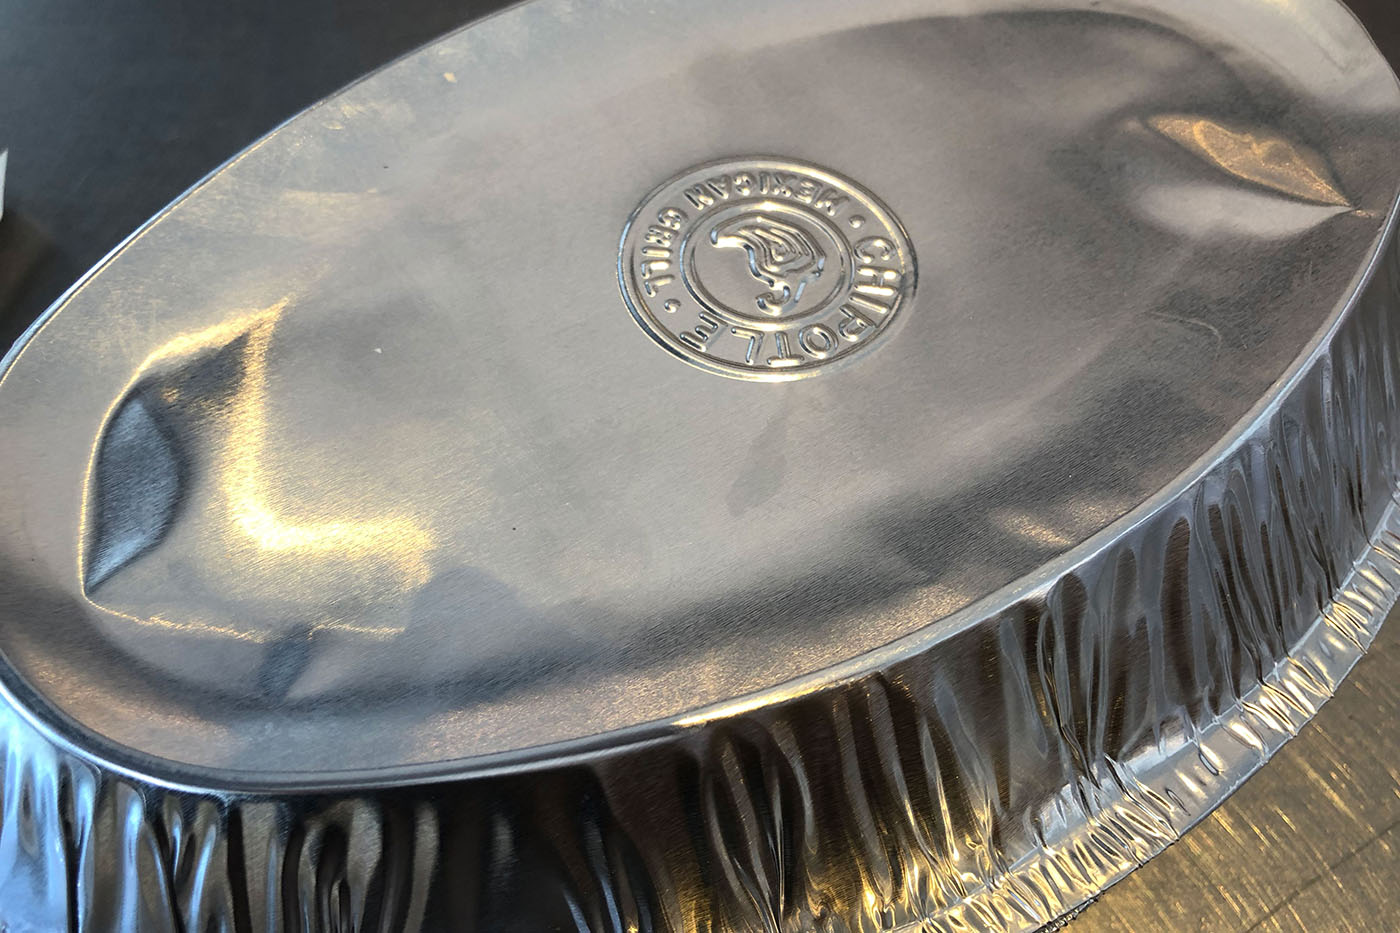 Chipotle takeout container